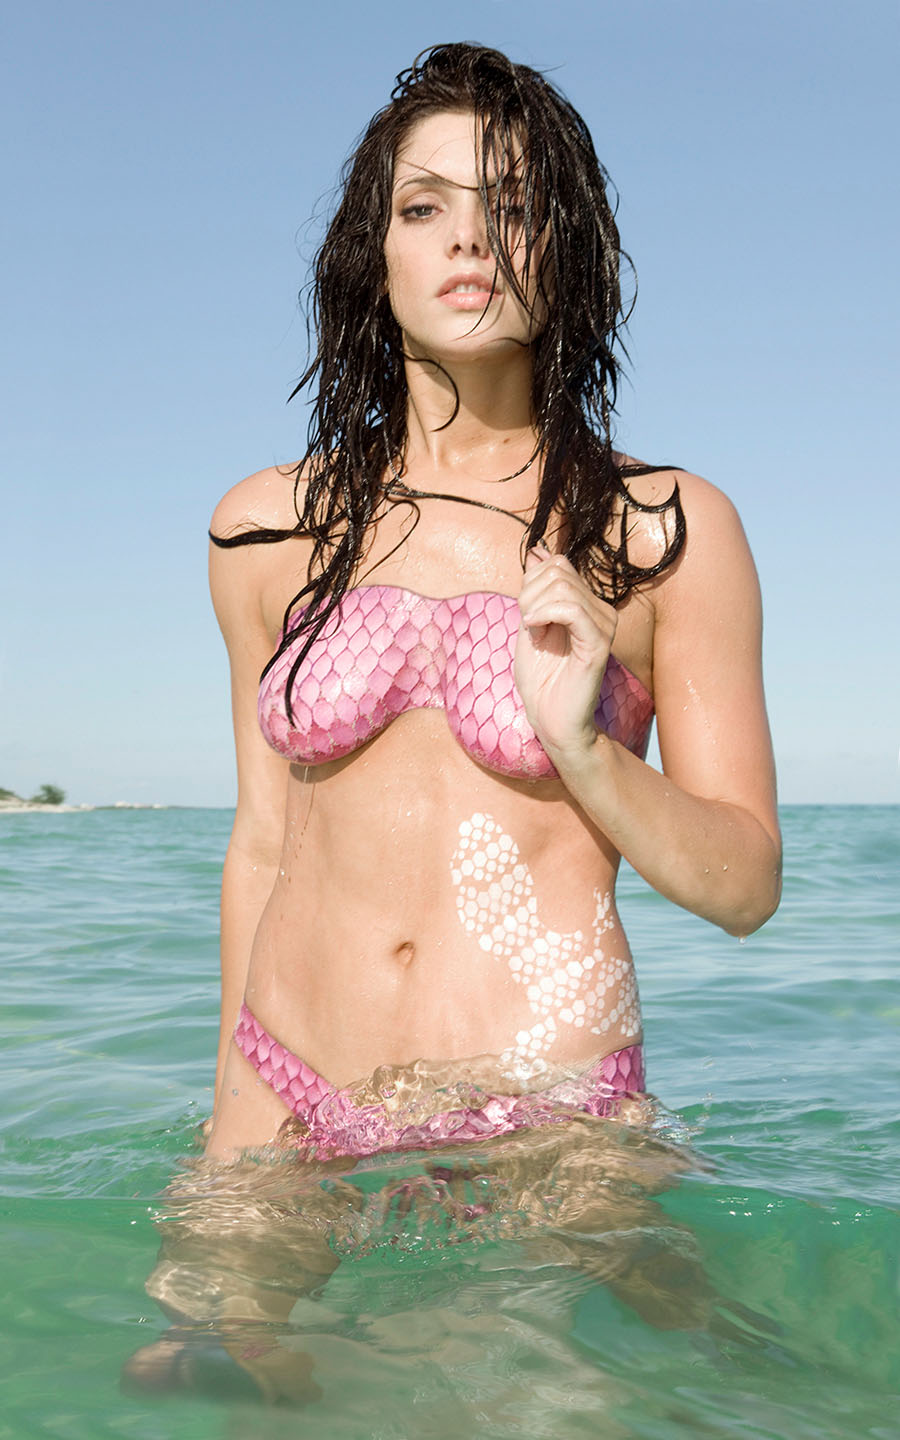 ashley greene scandal  pictures nsfw